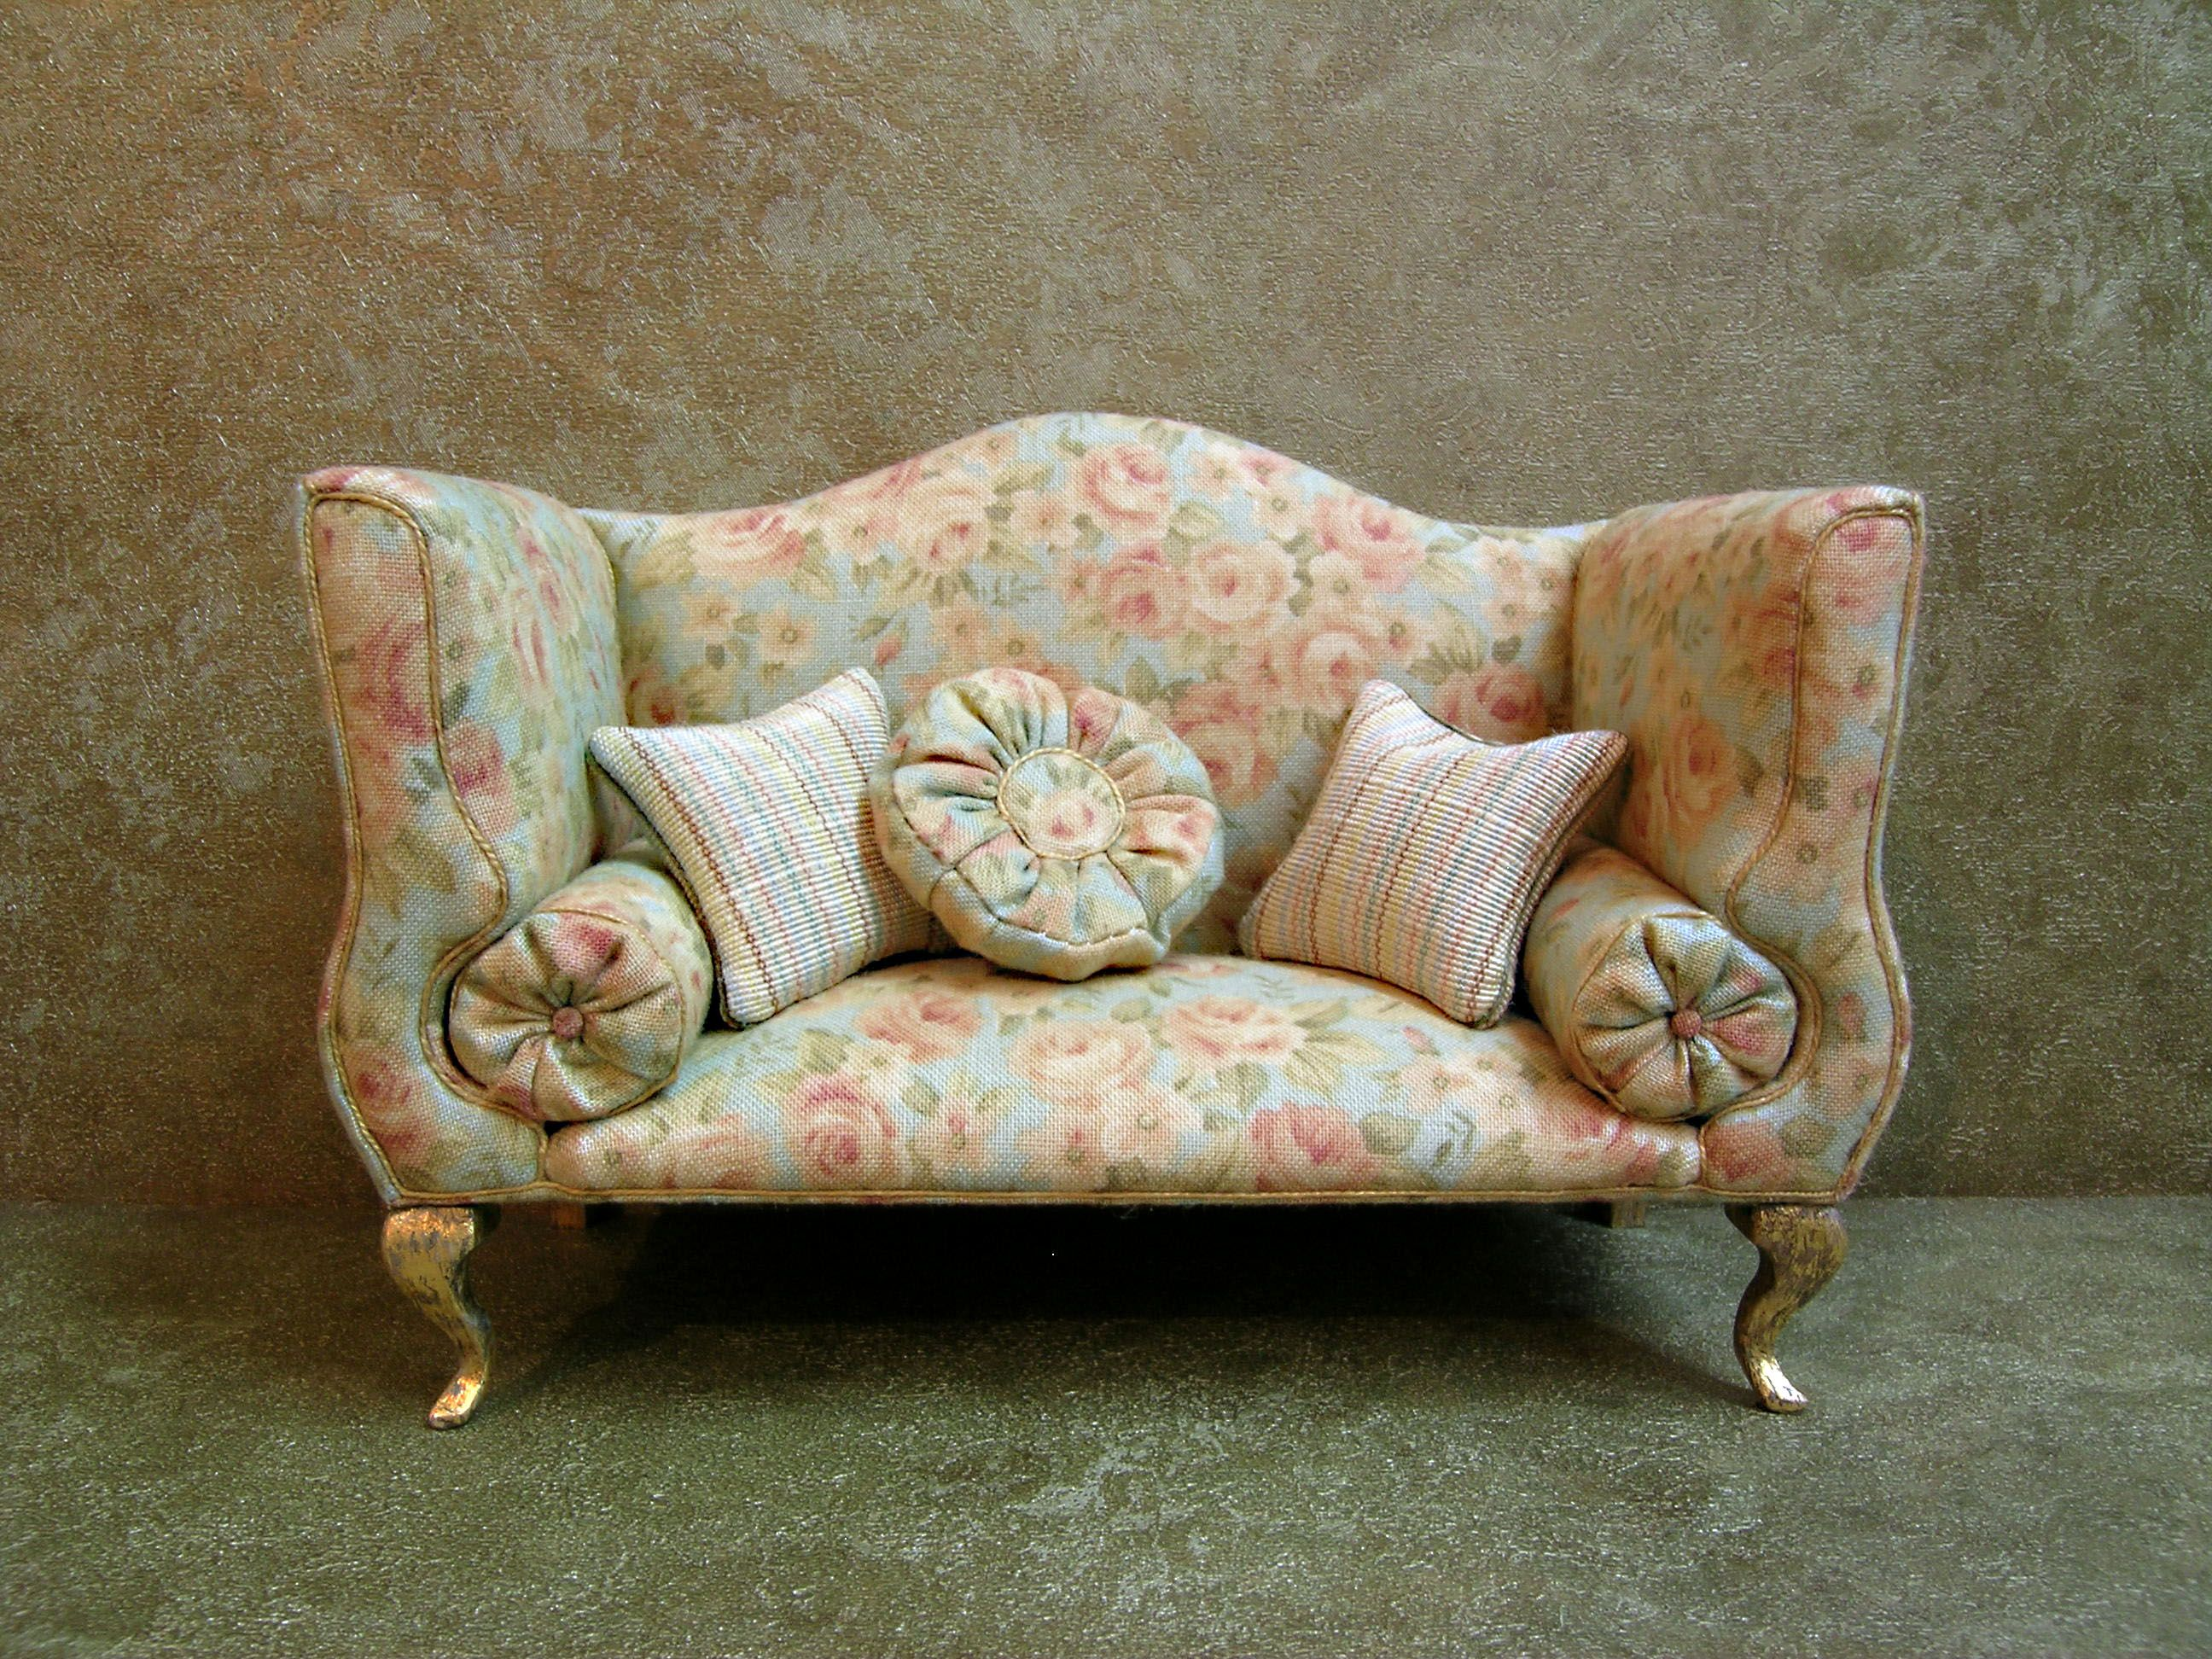 Miniature Sofa Marlow Reclining Loveseat And Chair Set 1 12 Scale By Desire Lafuente Pretty Minis